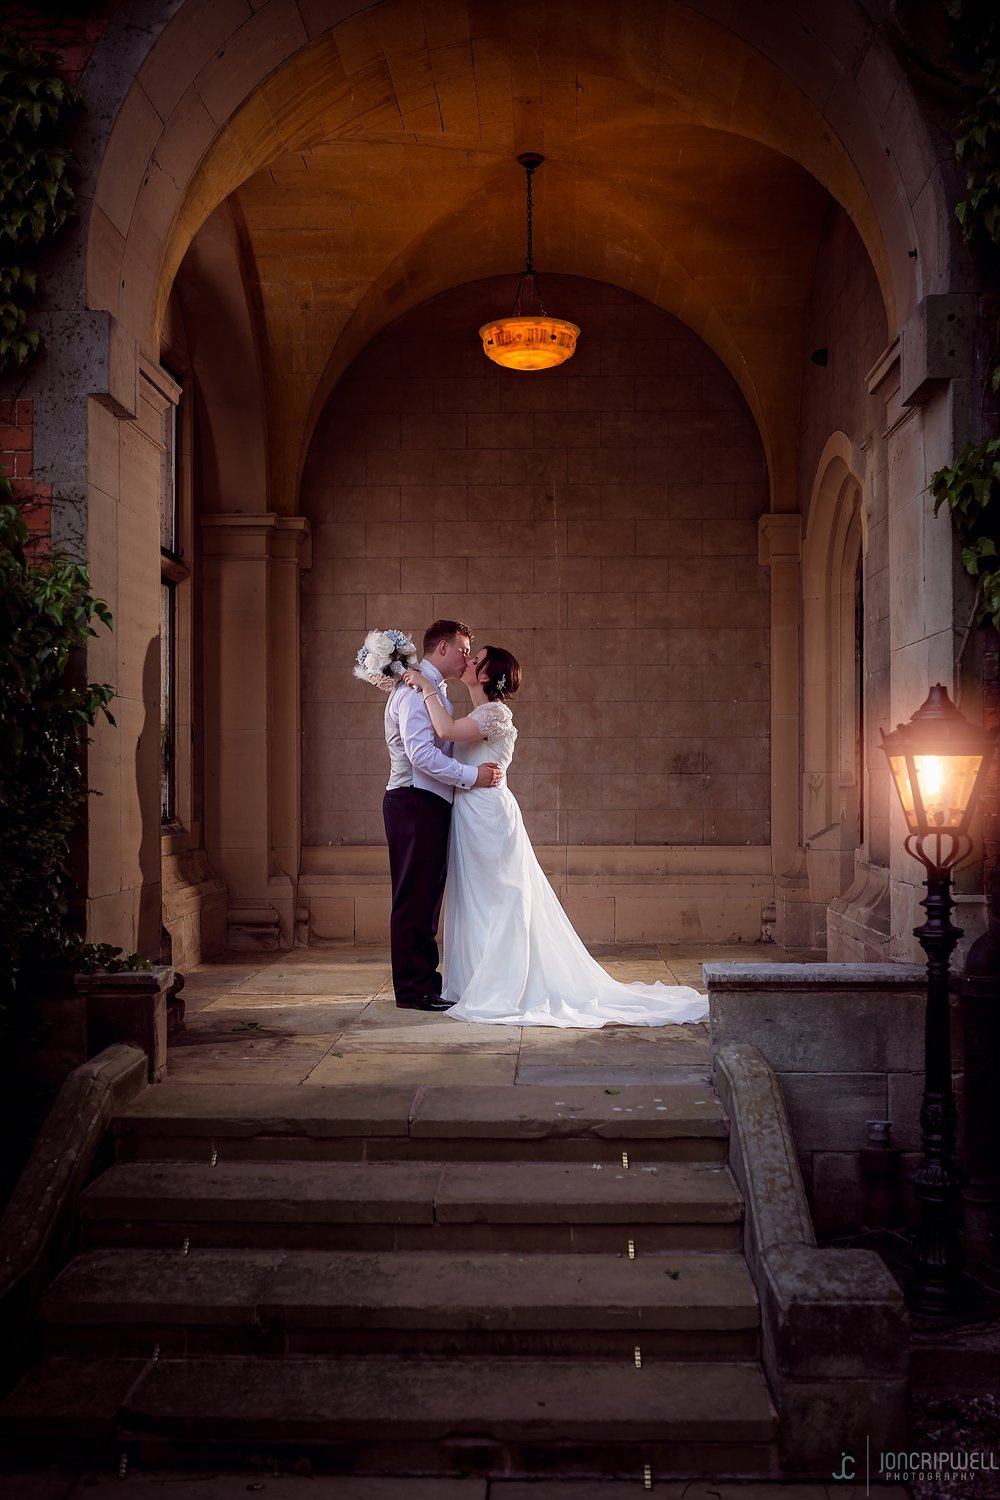 Paige & Tom at Hoarcross Hall